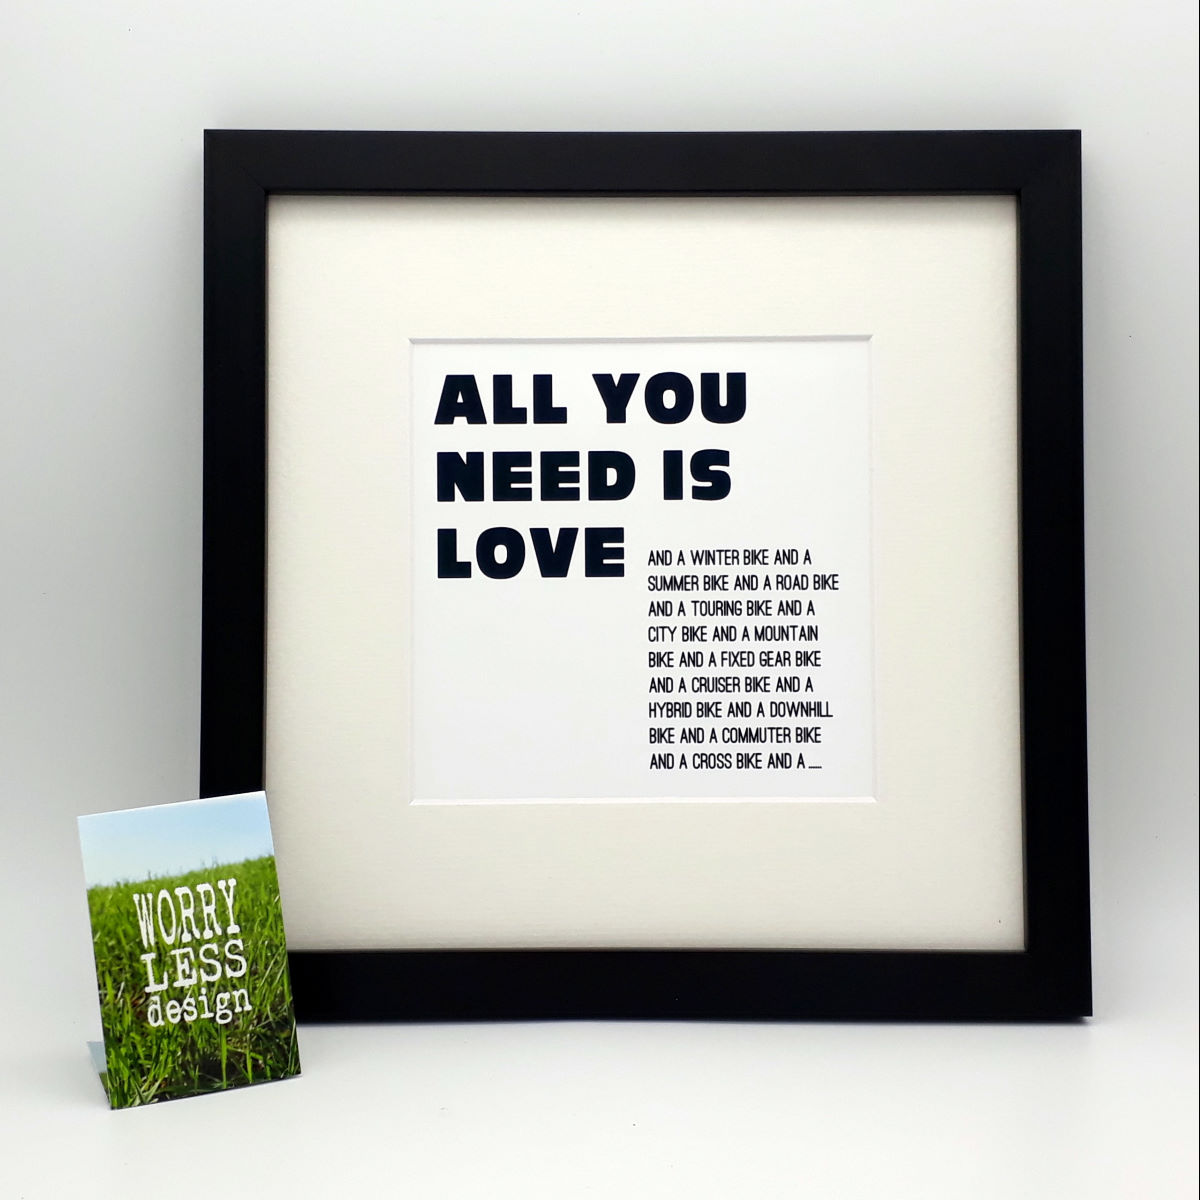 Worry Less Designs All You Need Is Love Framed Print - Regalos